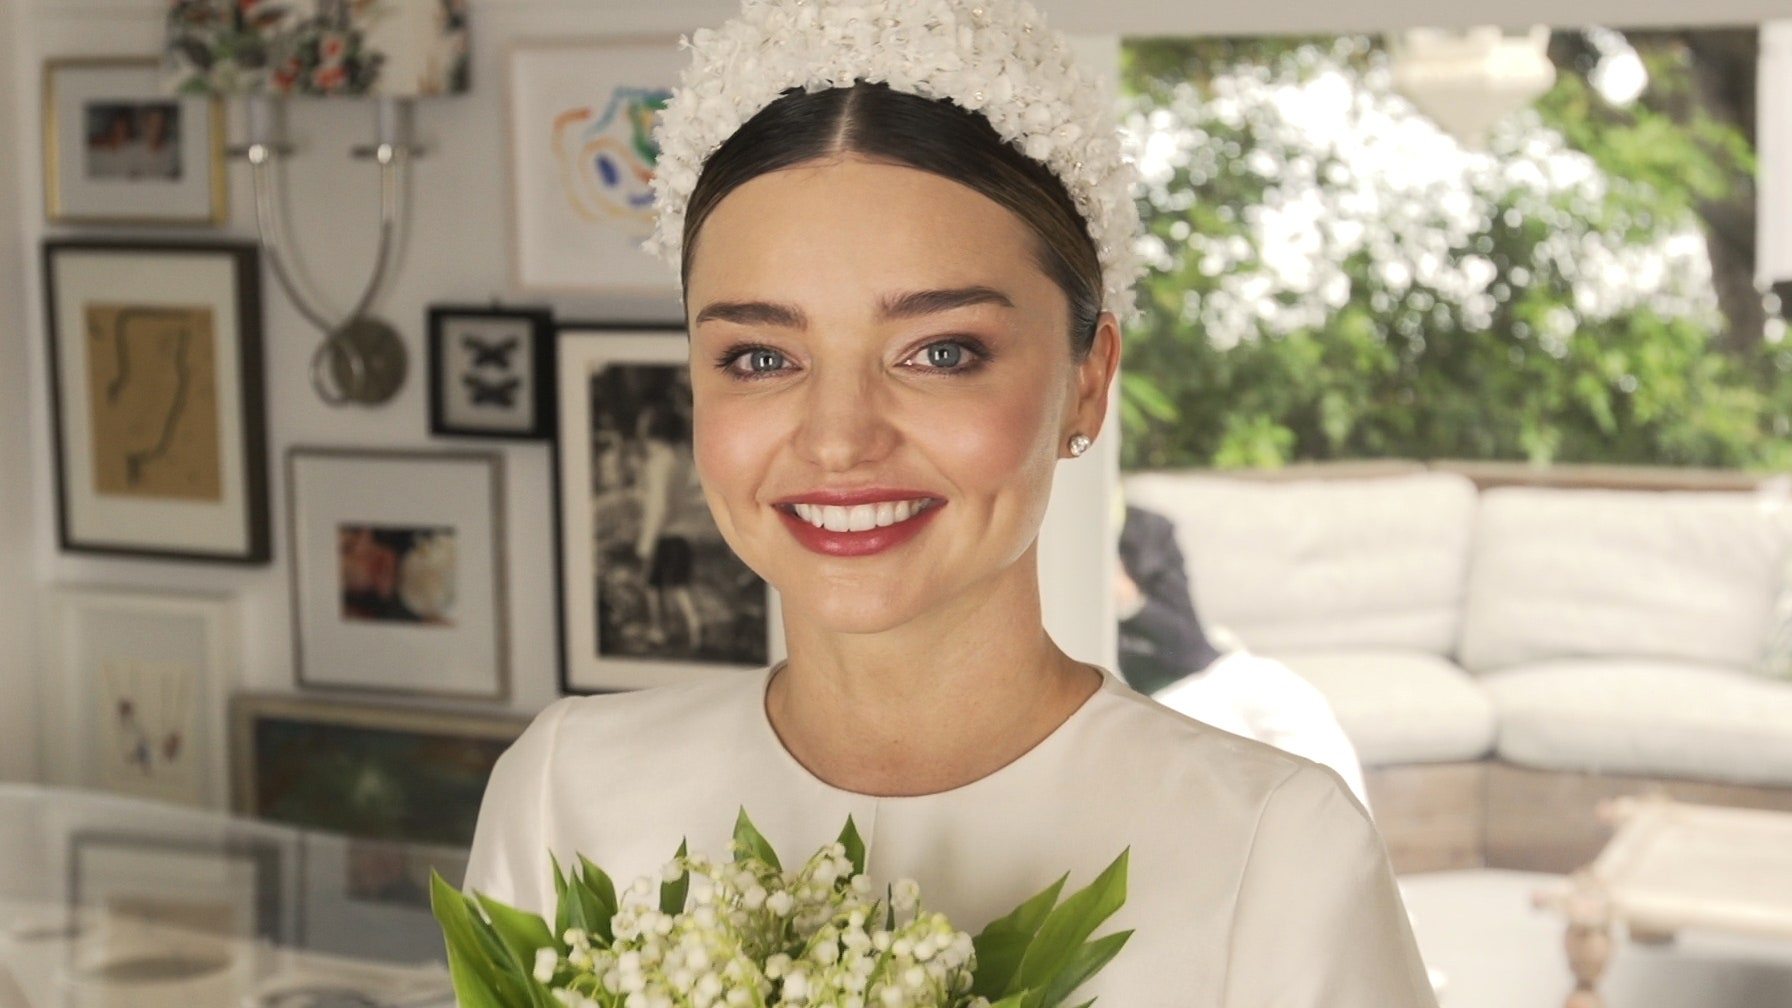 7967d403bca An exclusive behind-the-scenes look at Miranda Kerr s wedding dress fitting  with Dior s Maria Grazia Chiuri  https   t.co xCA7wlU1wc